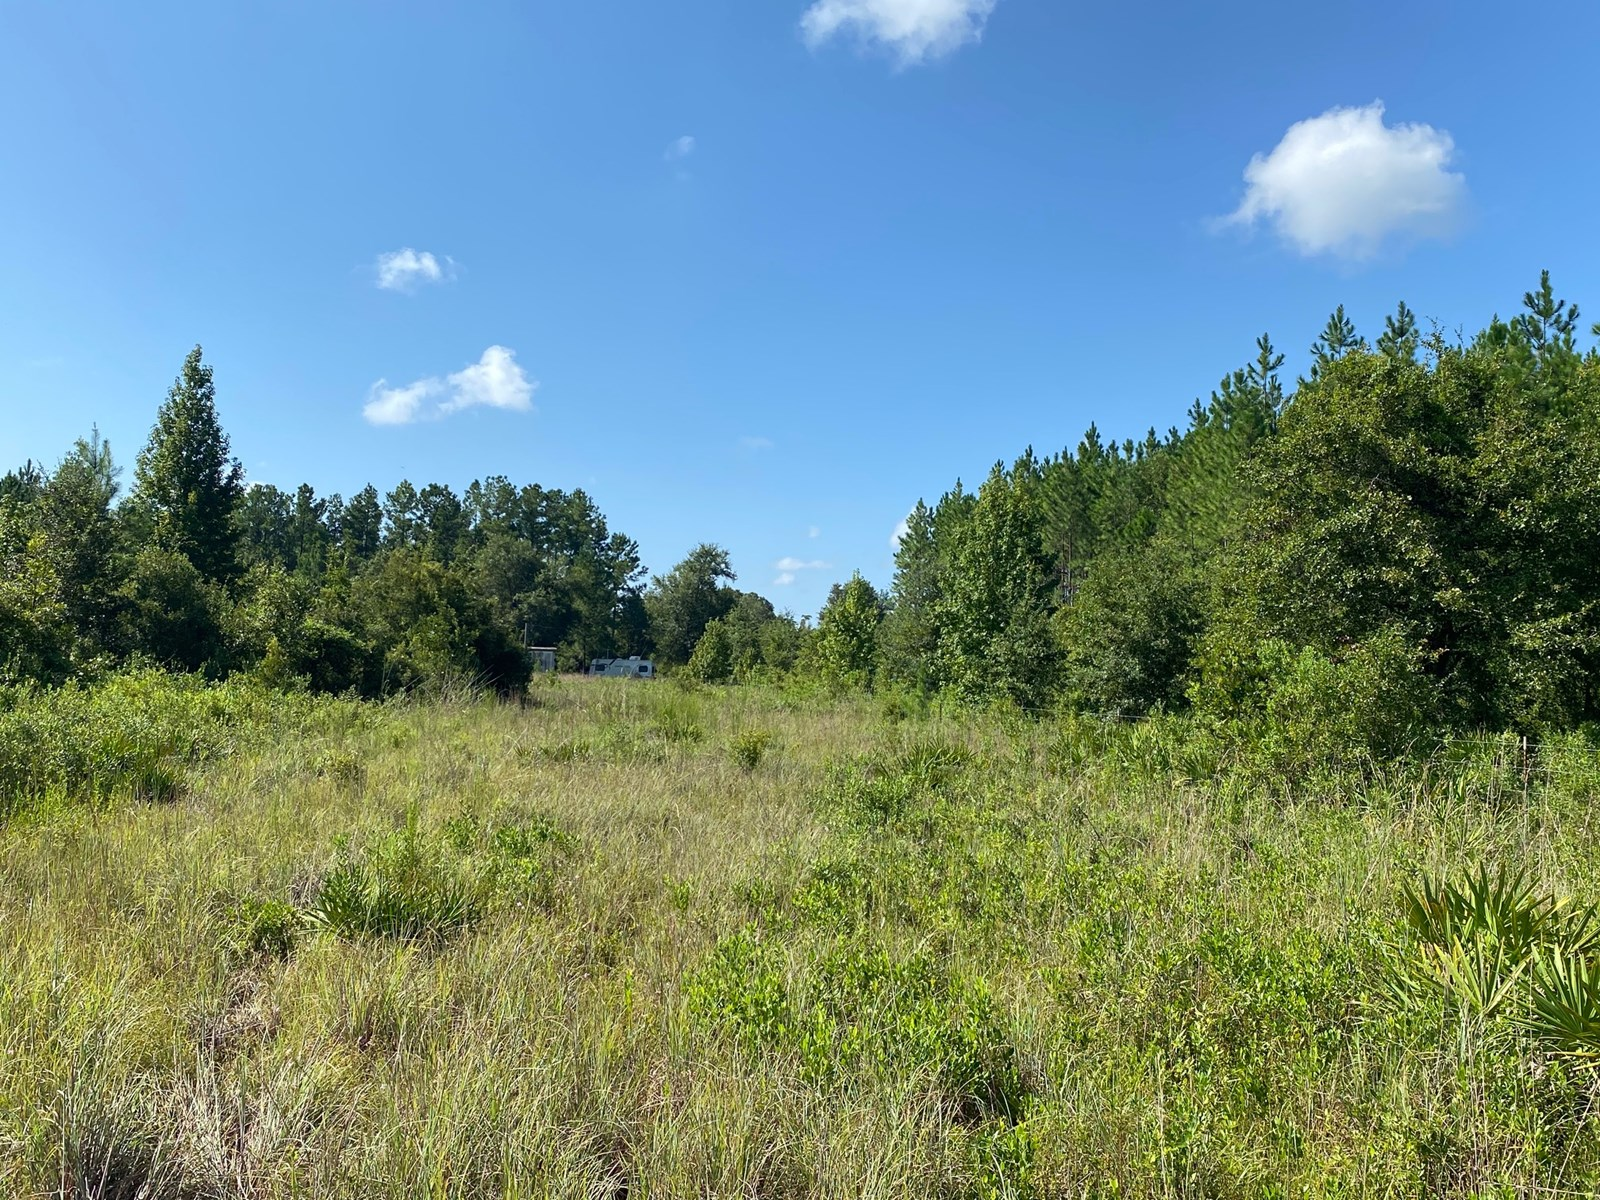 40 ACRE PARCEL WITH WELL, SEPTIC & POWER POLE IN NORTH FL